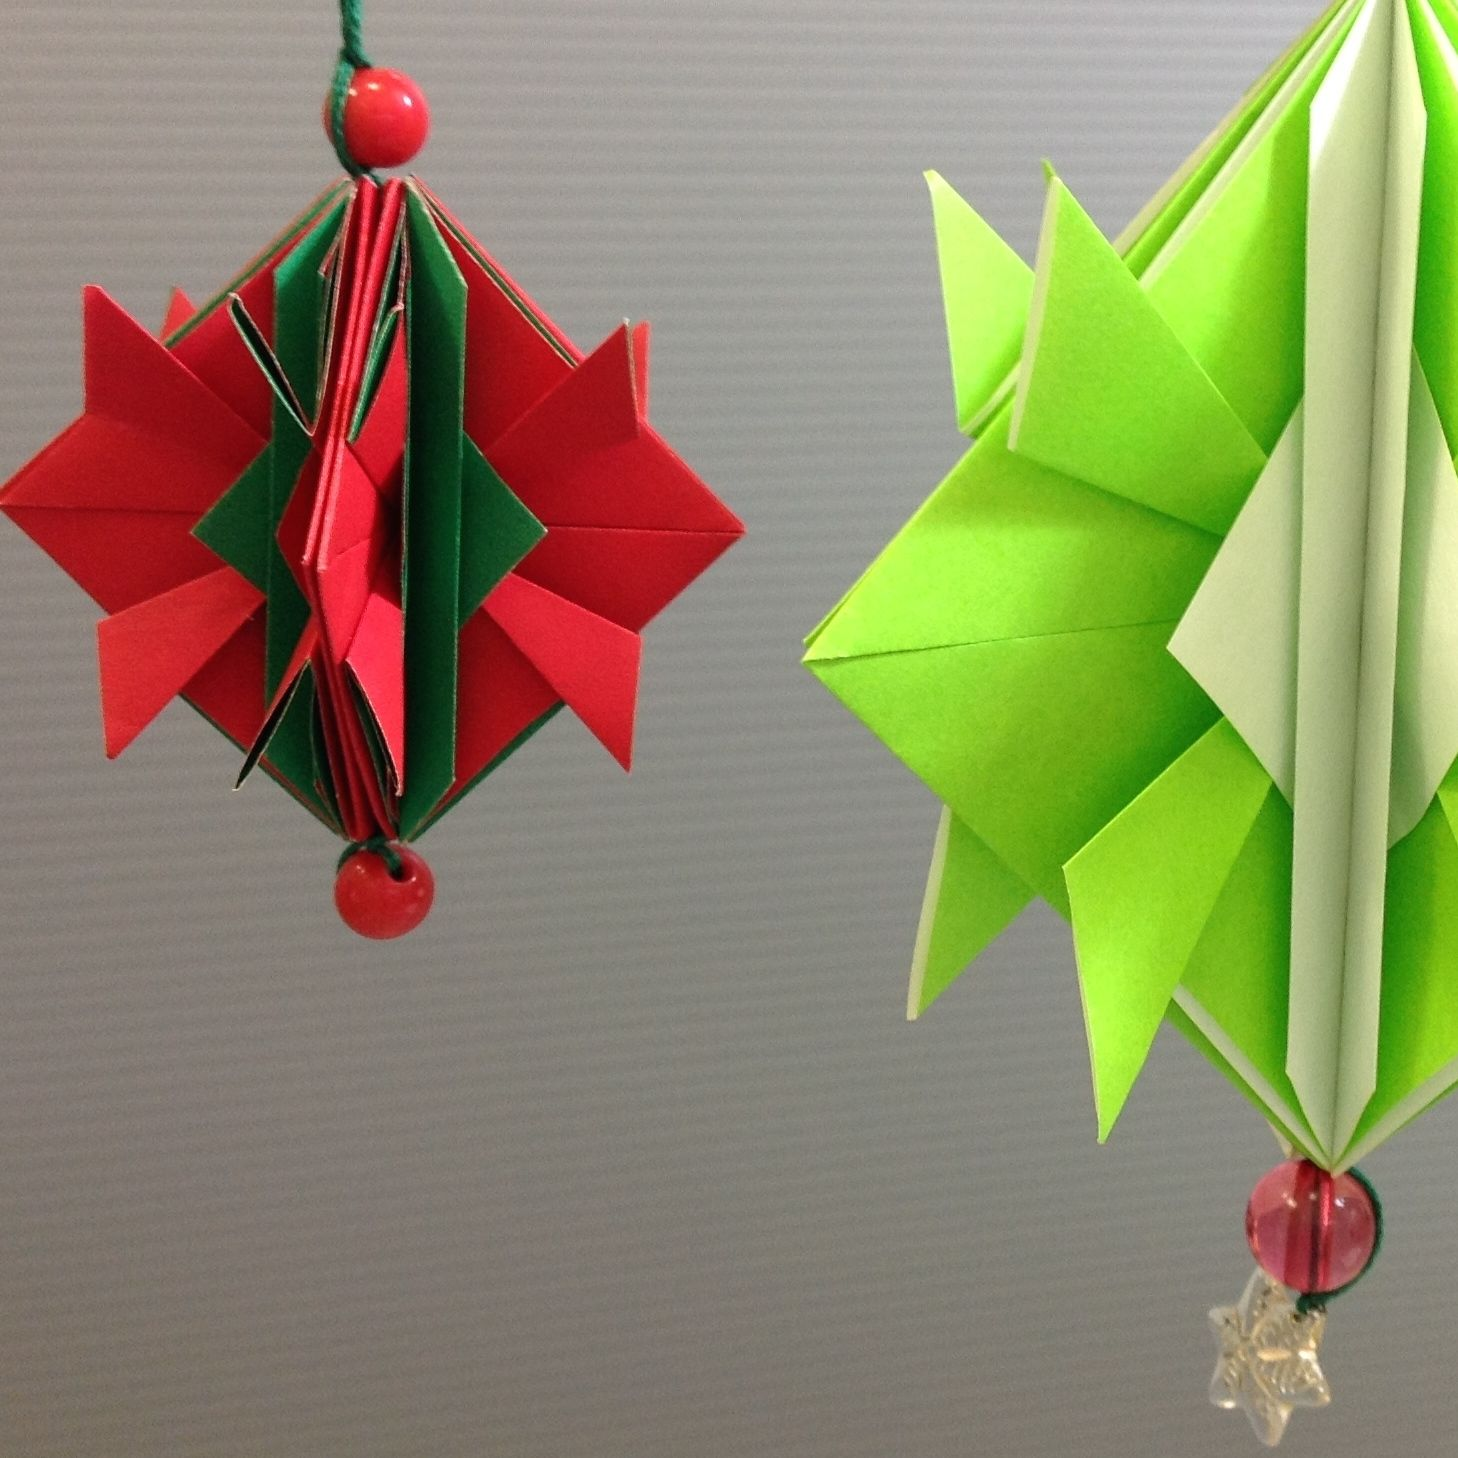 Easy Origami Christmas Ornament Decoration Tutorial Origami Christmas Ornament Origami Christmas Tree Origami Easy